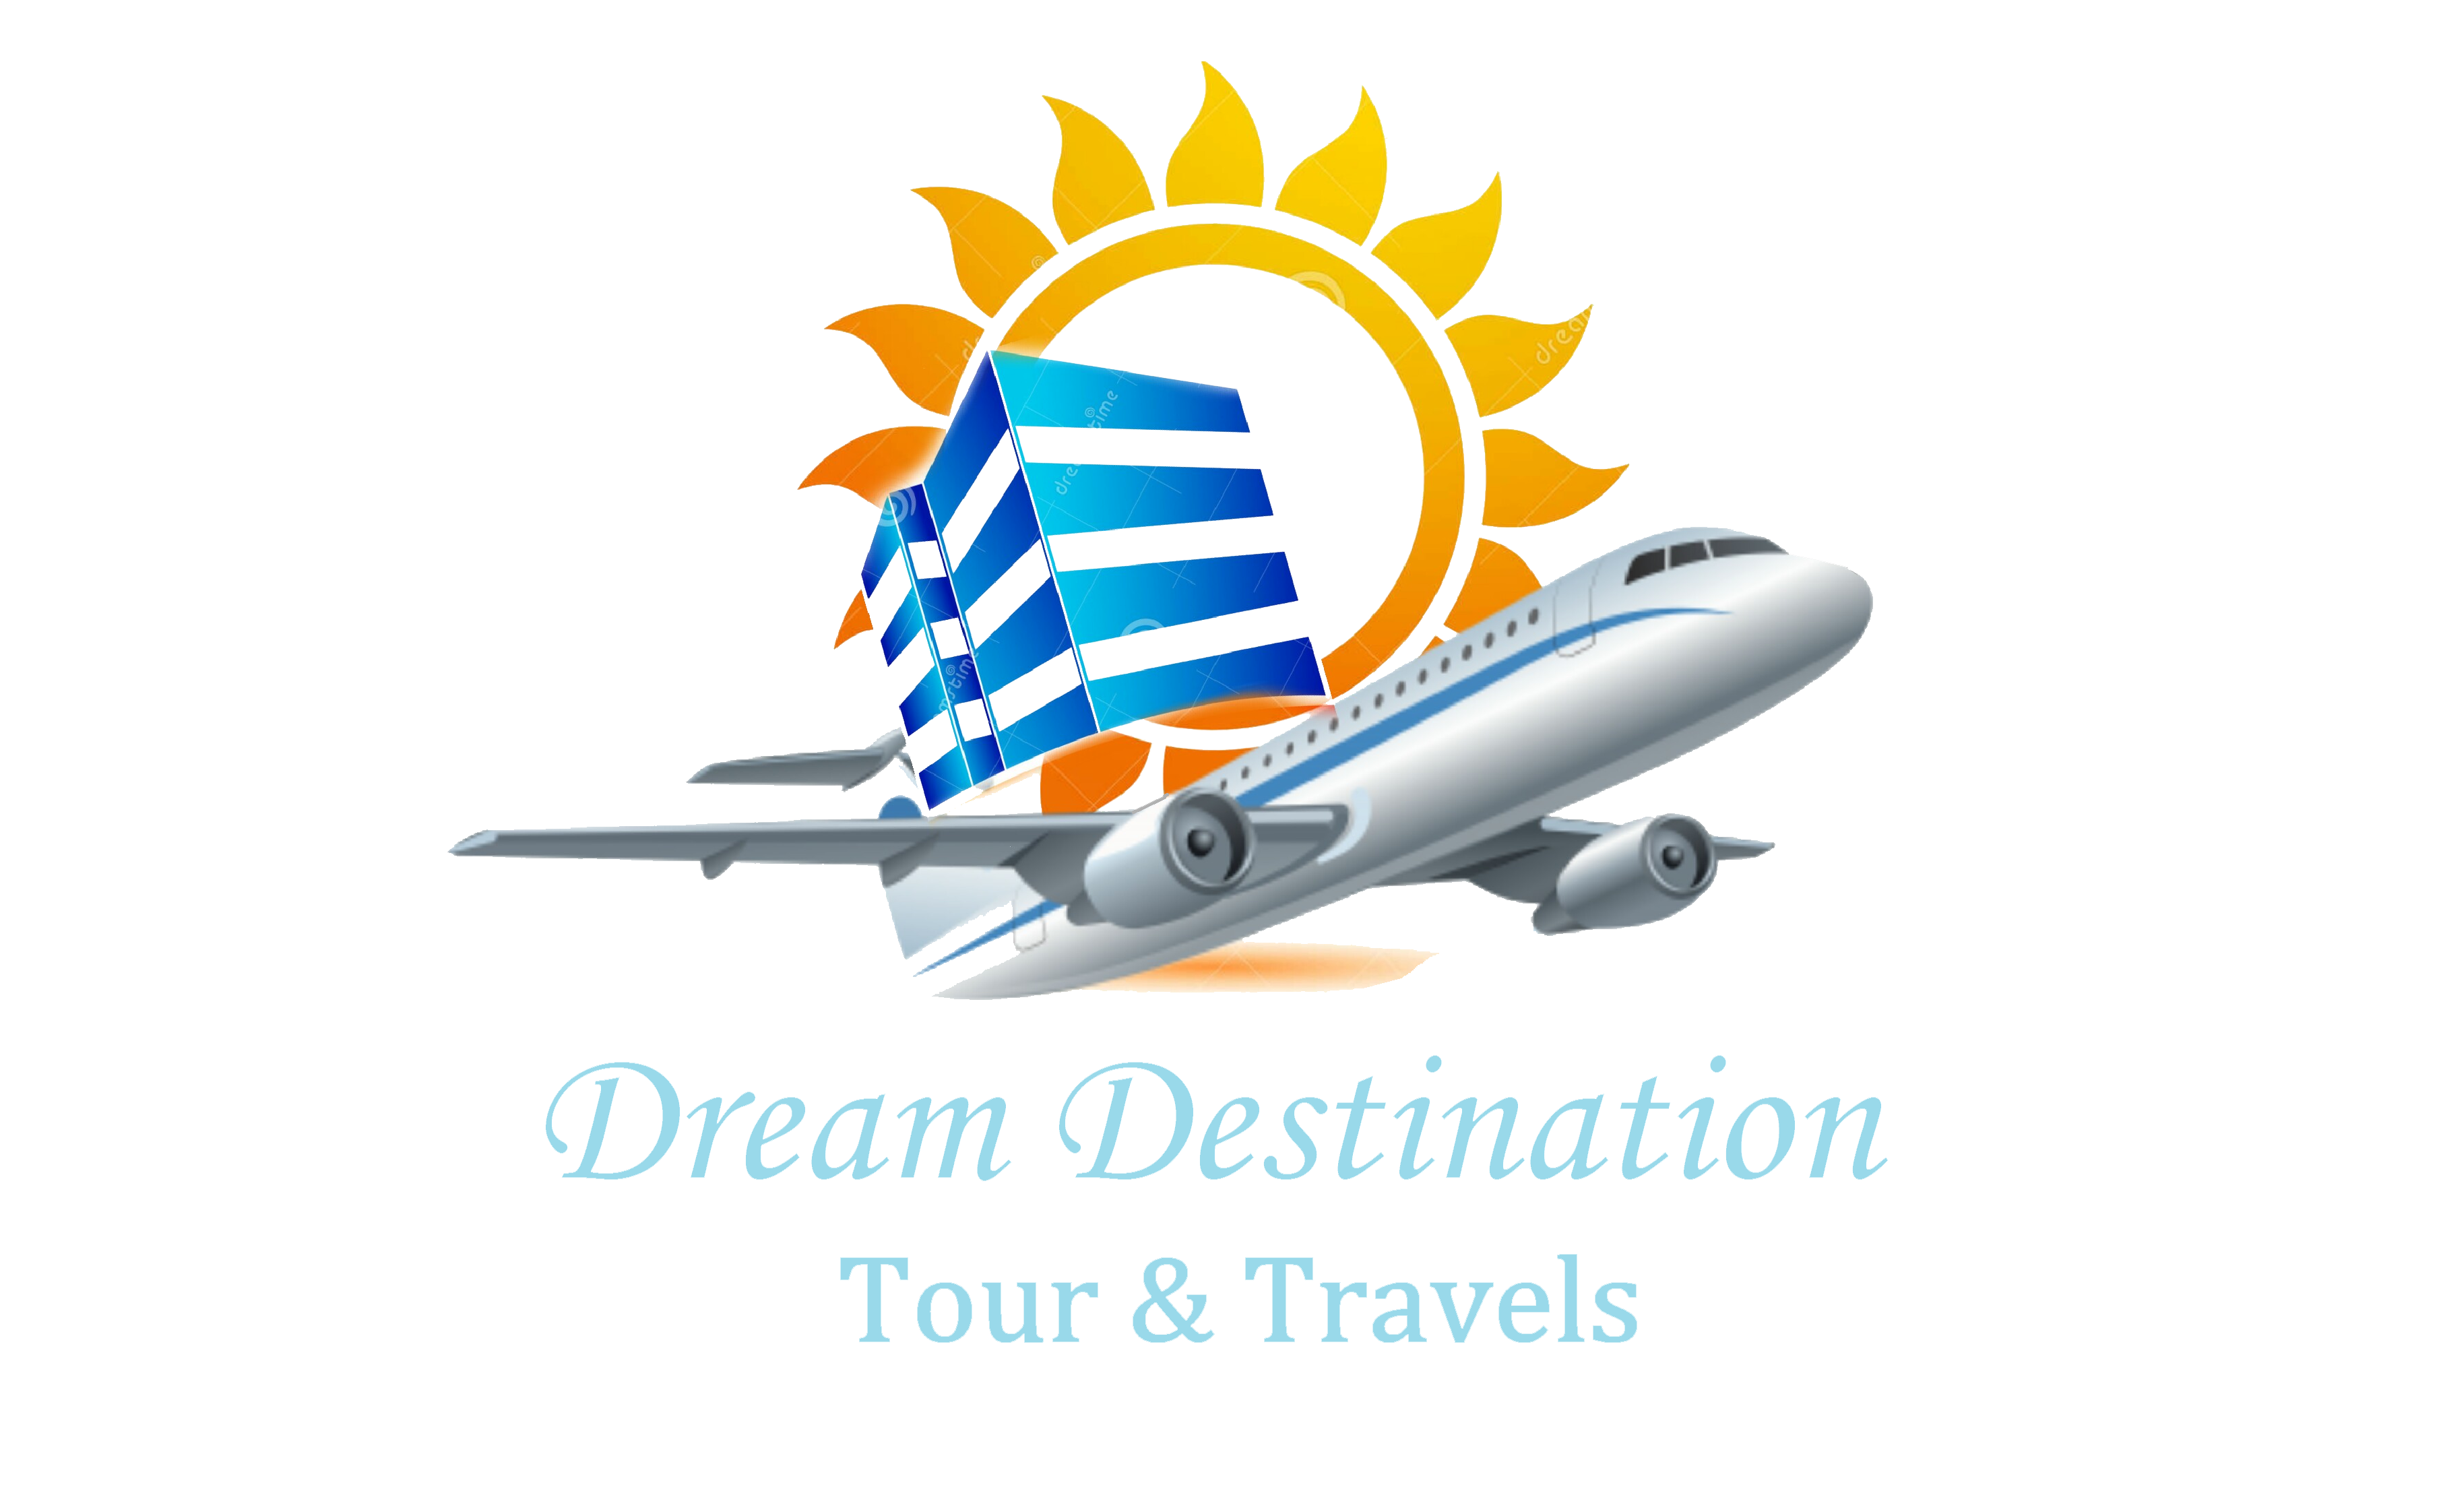 Dream Destination ID 514429